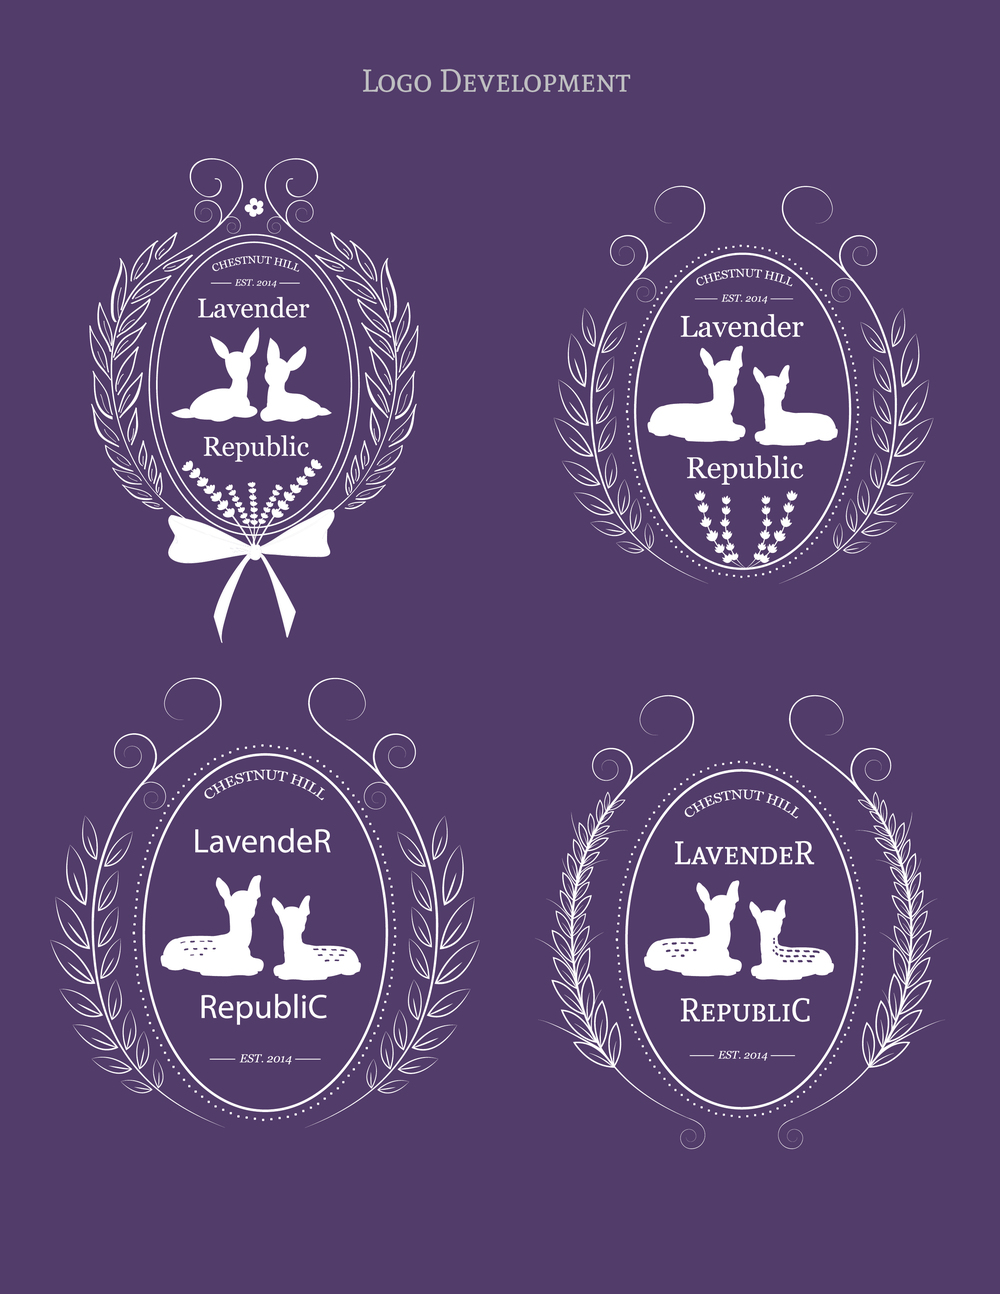 Lavender republic logo devolpement-02.jpg